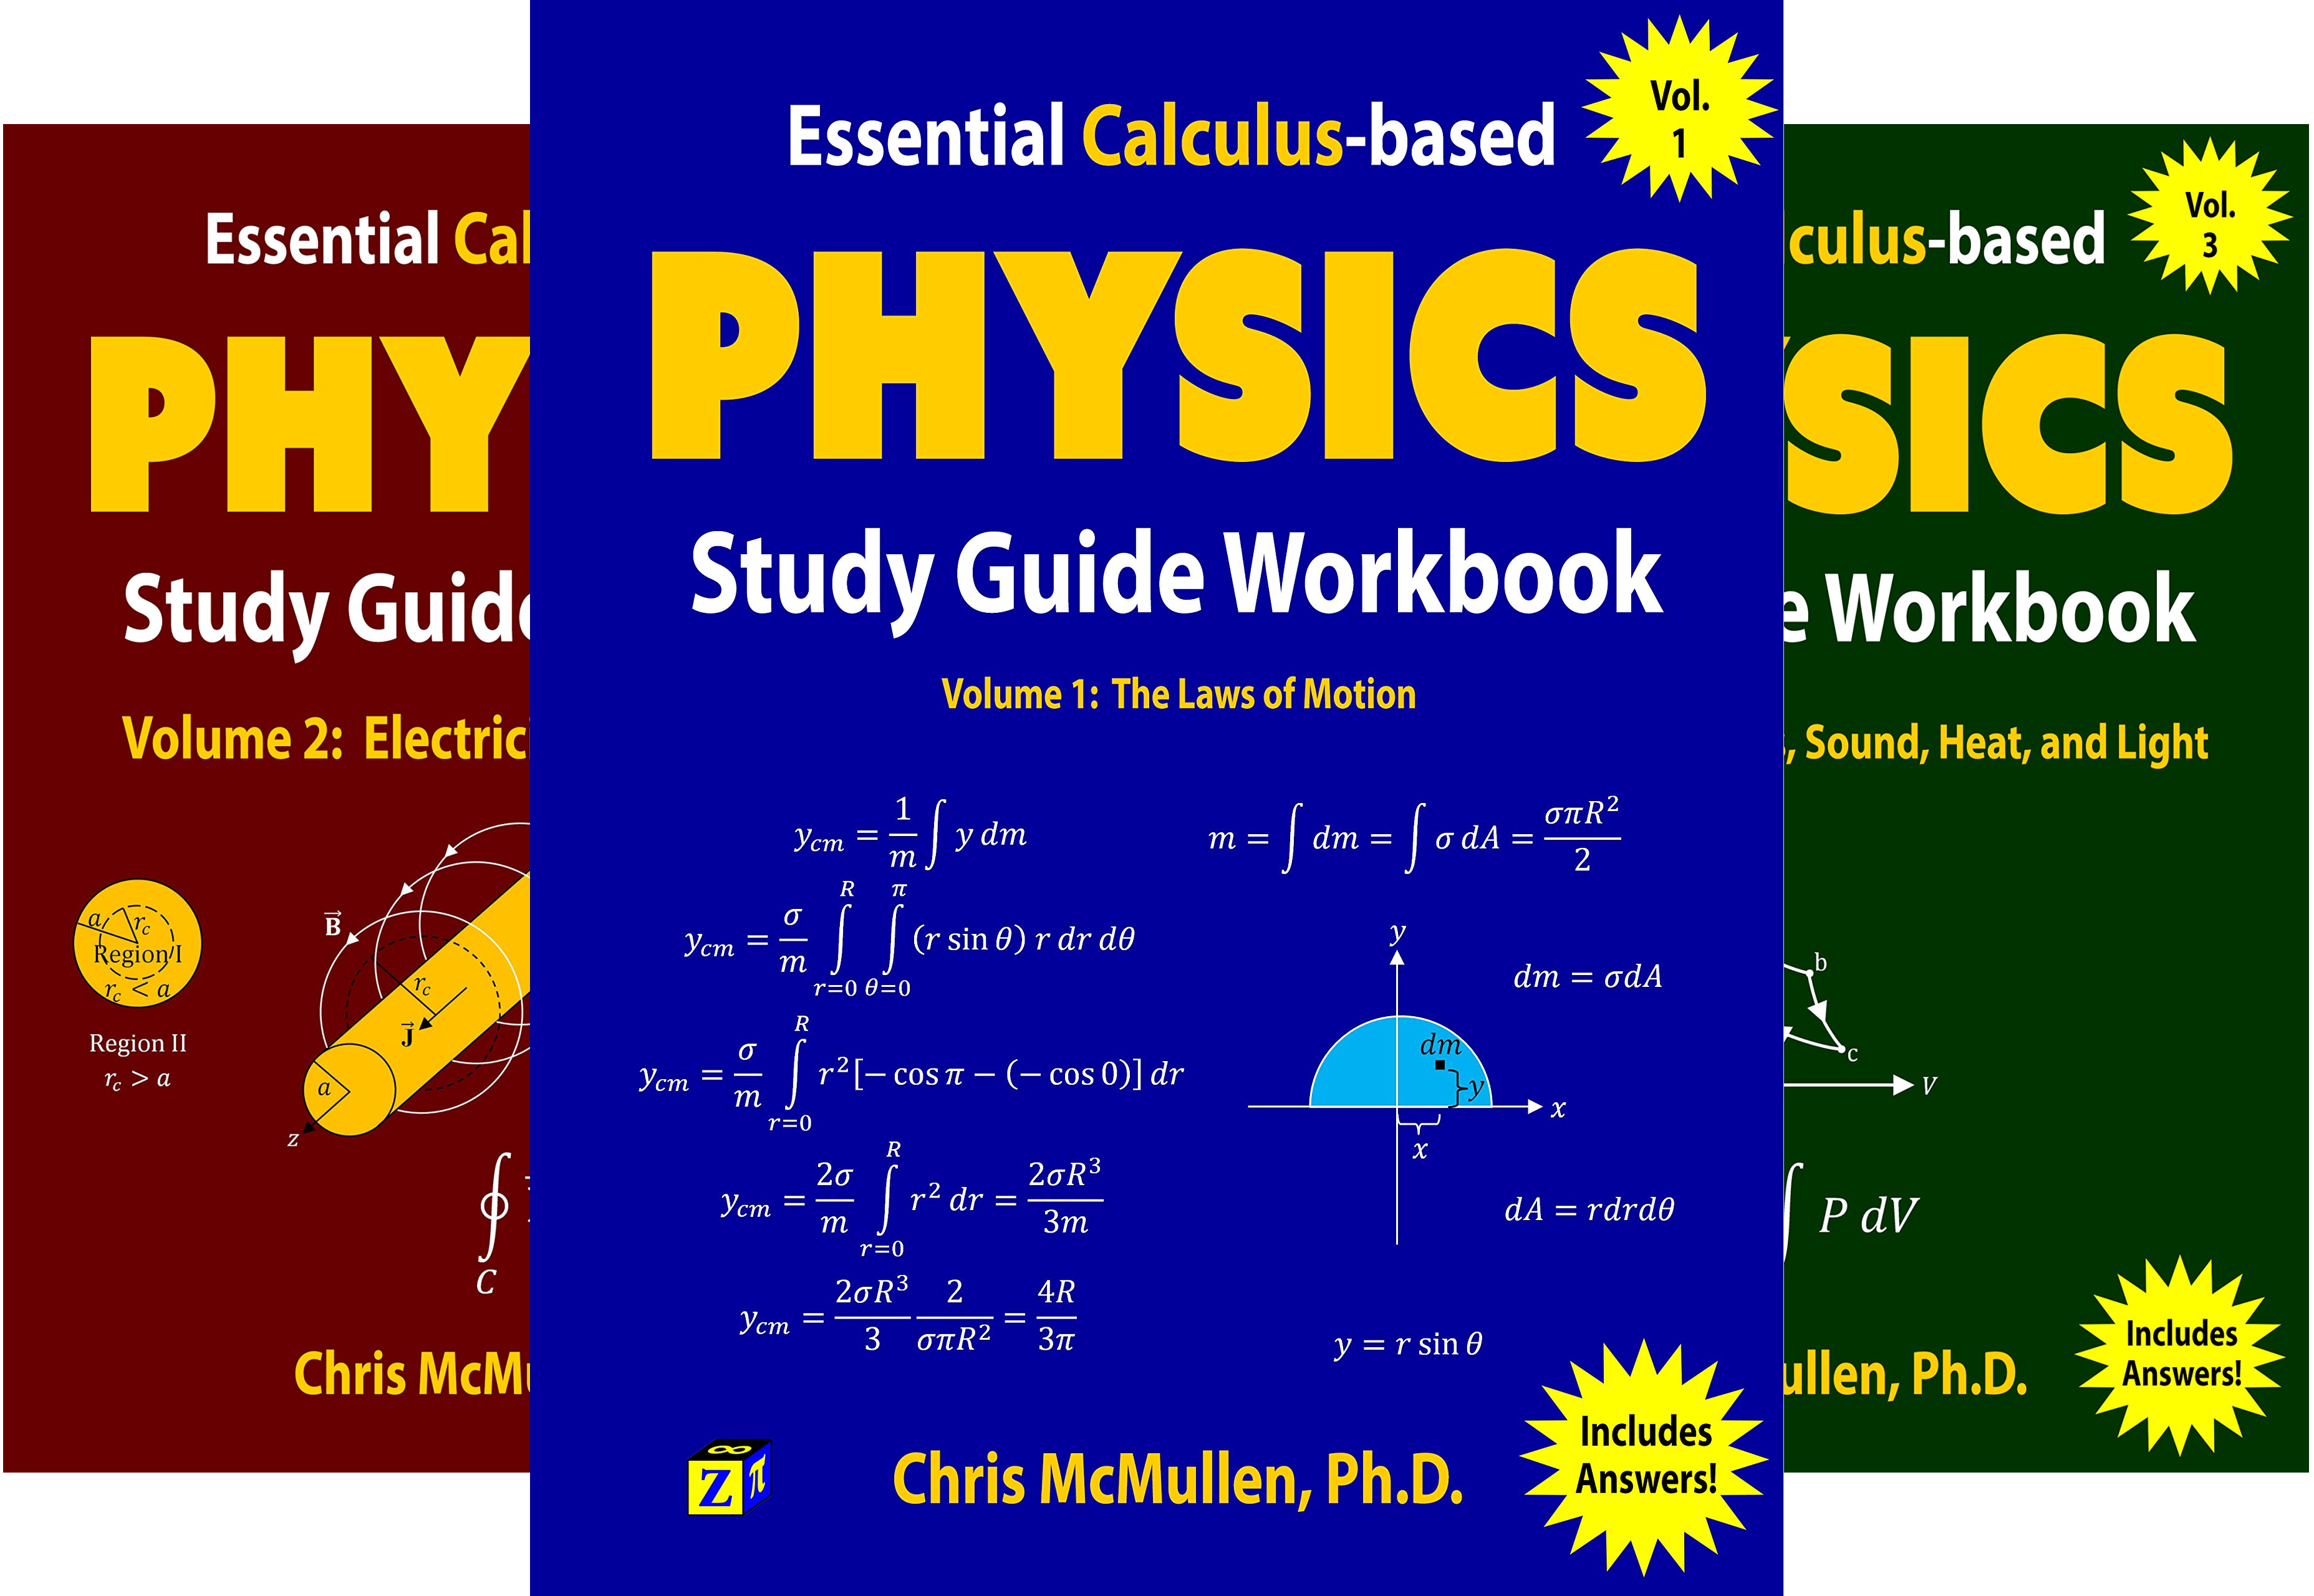 Learn Physics with Calculus Step-by-Step (3 Book Series)